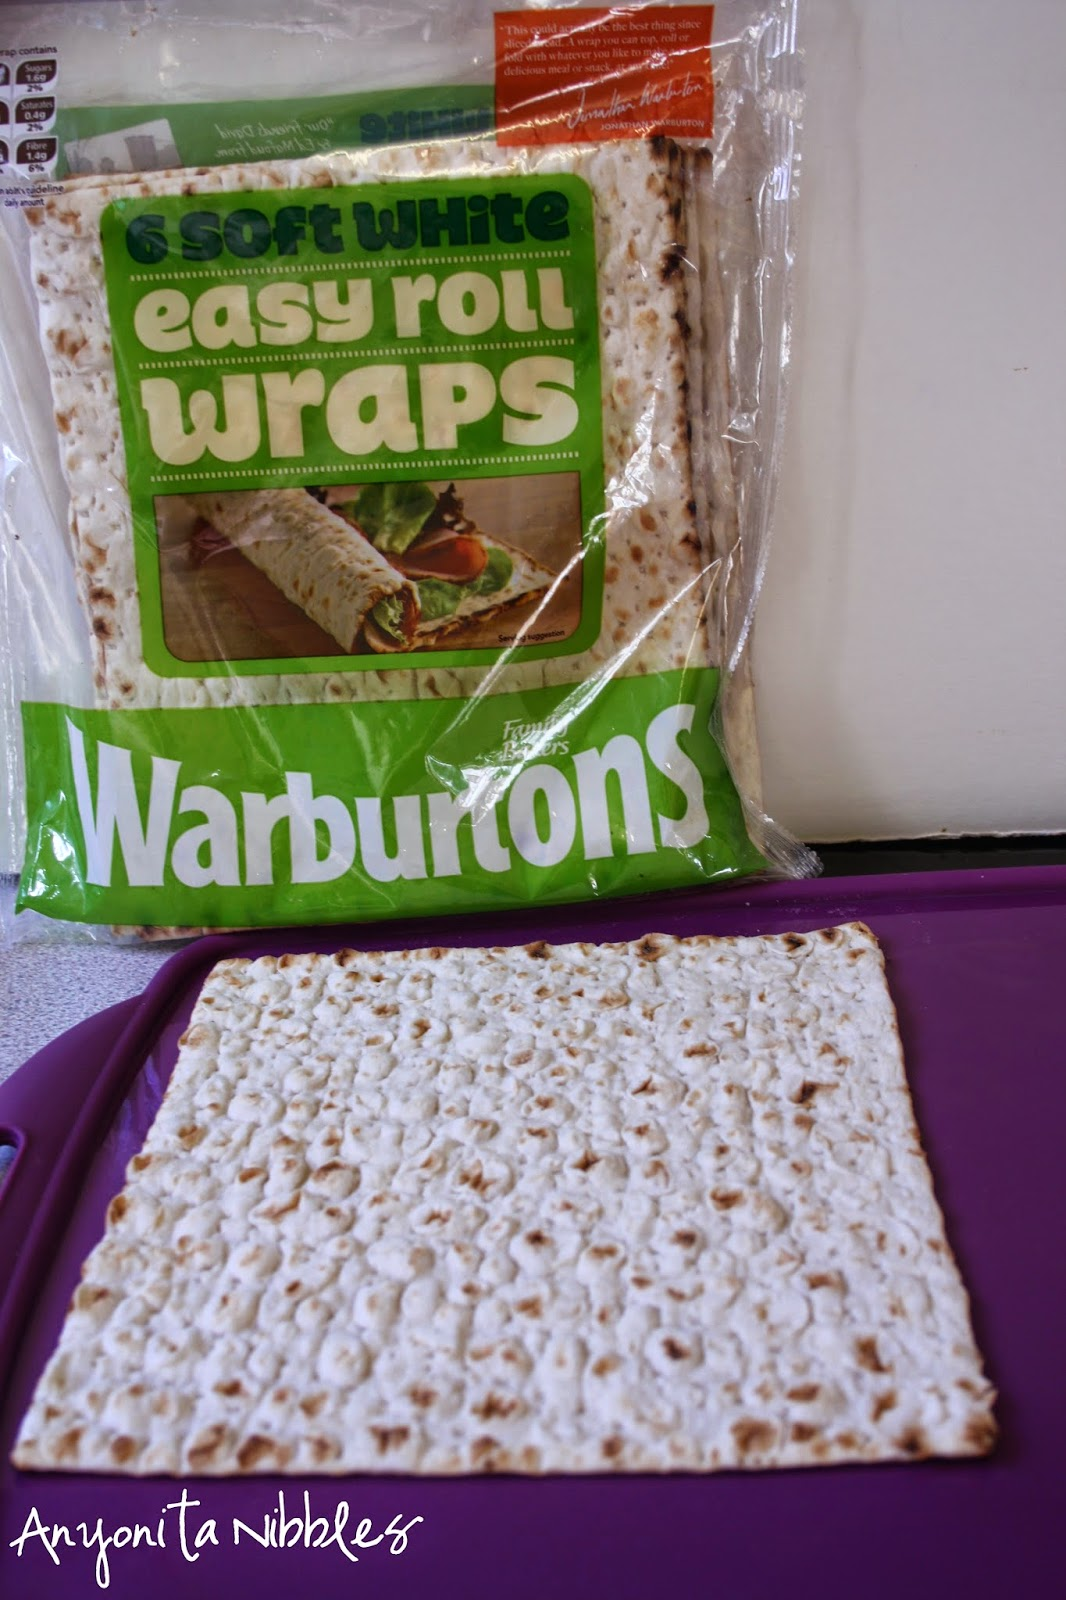 These easy roll wraps from Warburtons make rolling a cinch. From Anyonita Nibbles